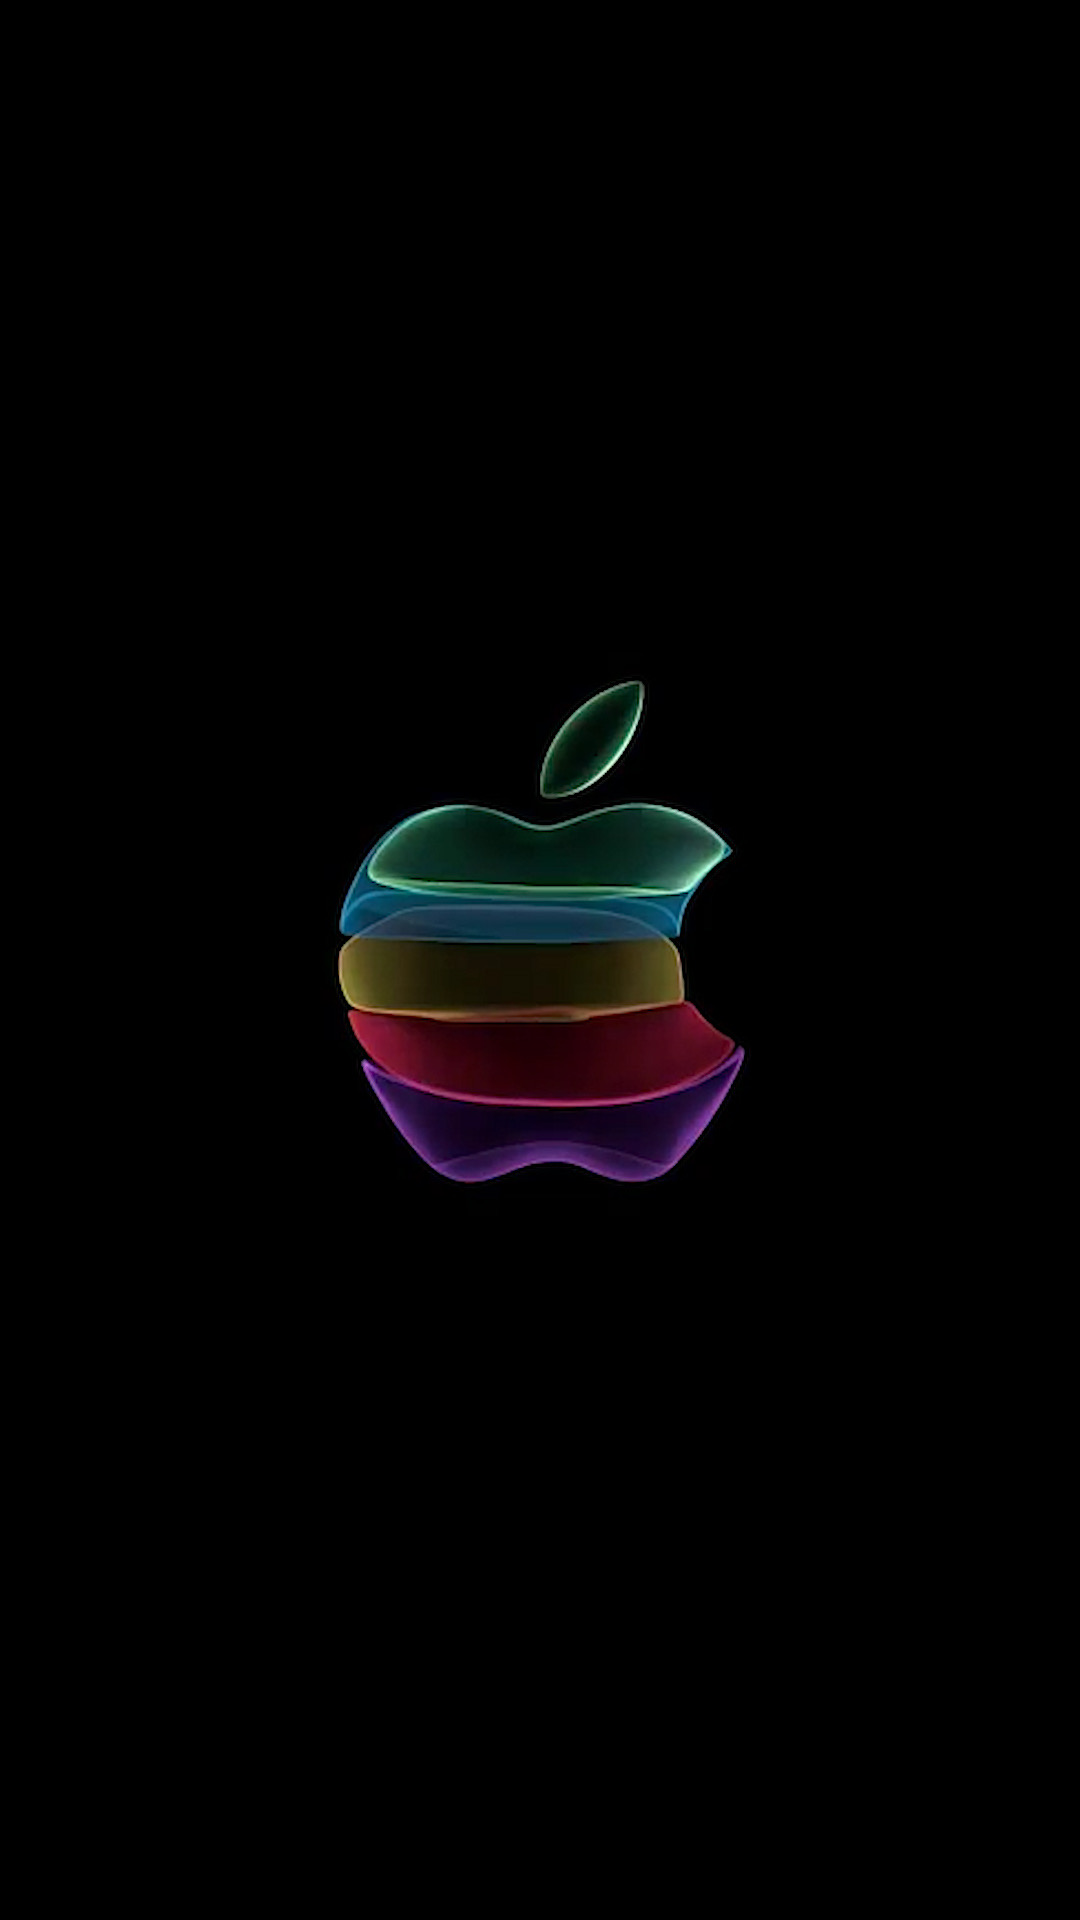 Apple Logo Iphone 11 Animation Live Wallpaper Wallpapers Central